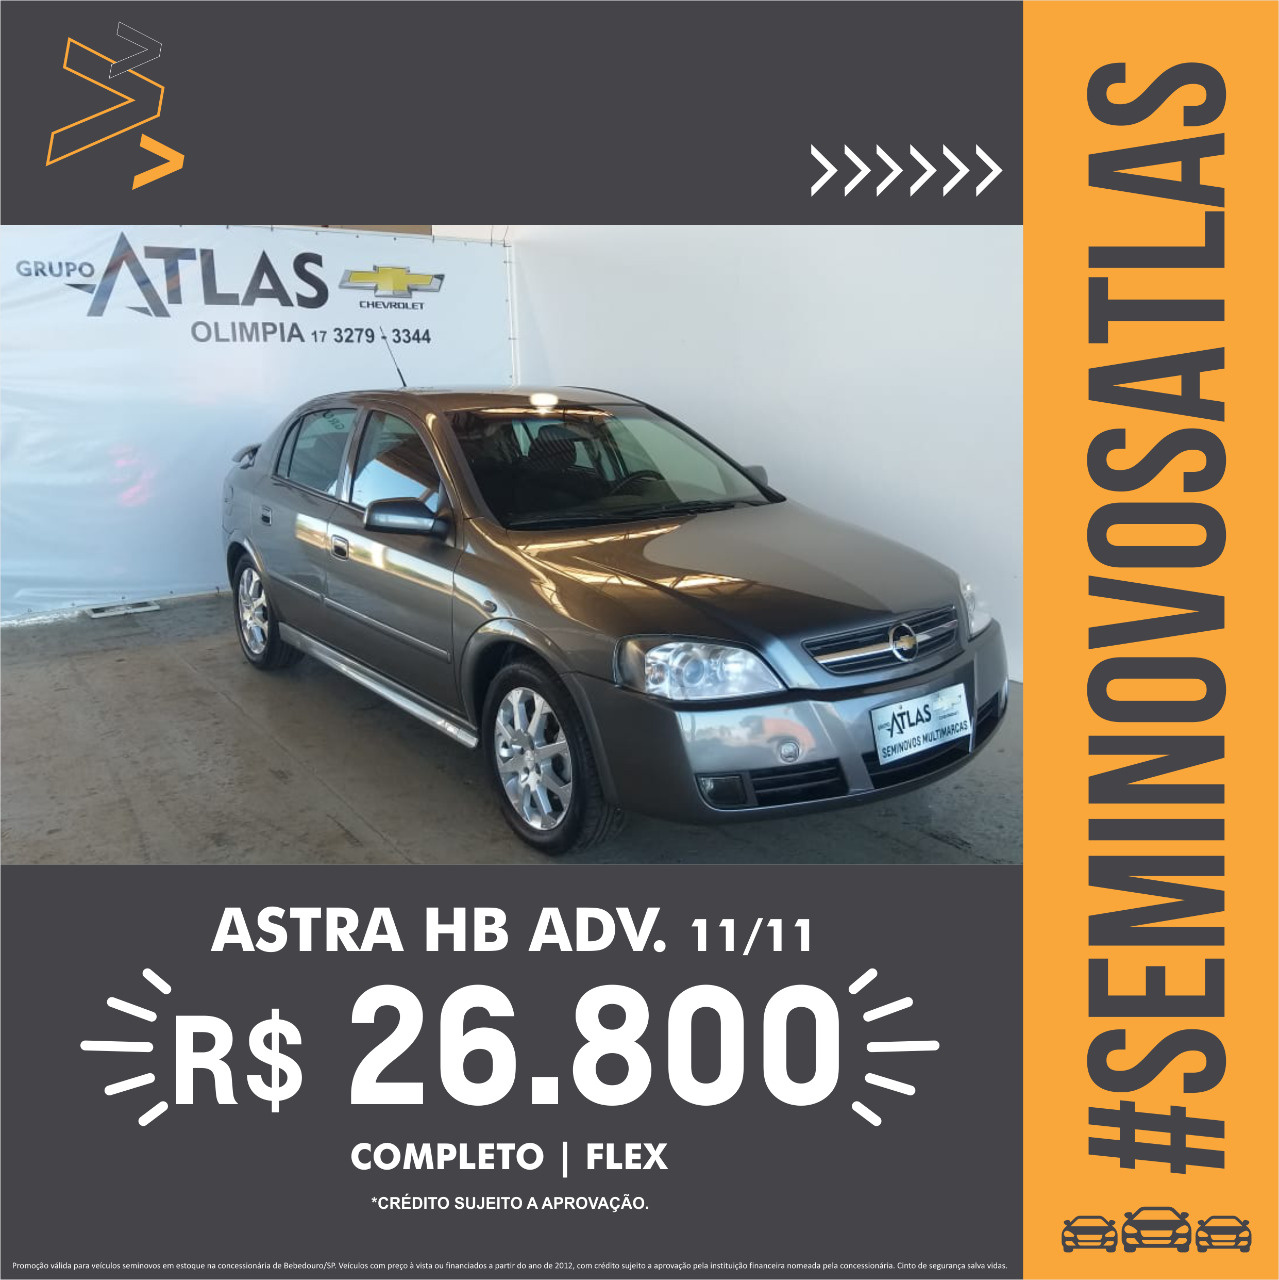 CHEVROLET ASTRA ADVANTAGE 2.0 2011